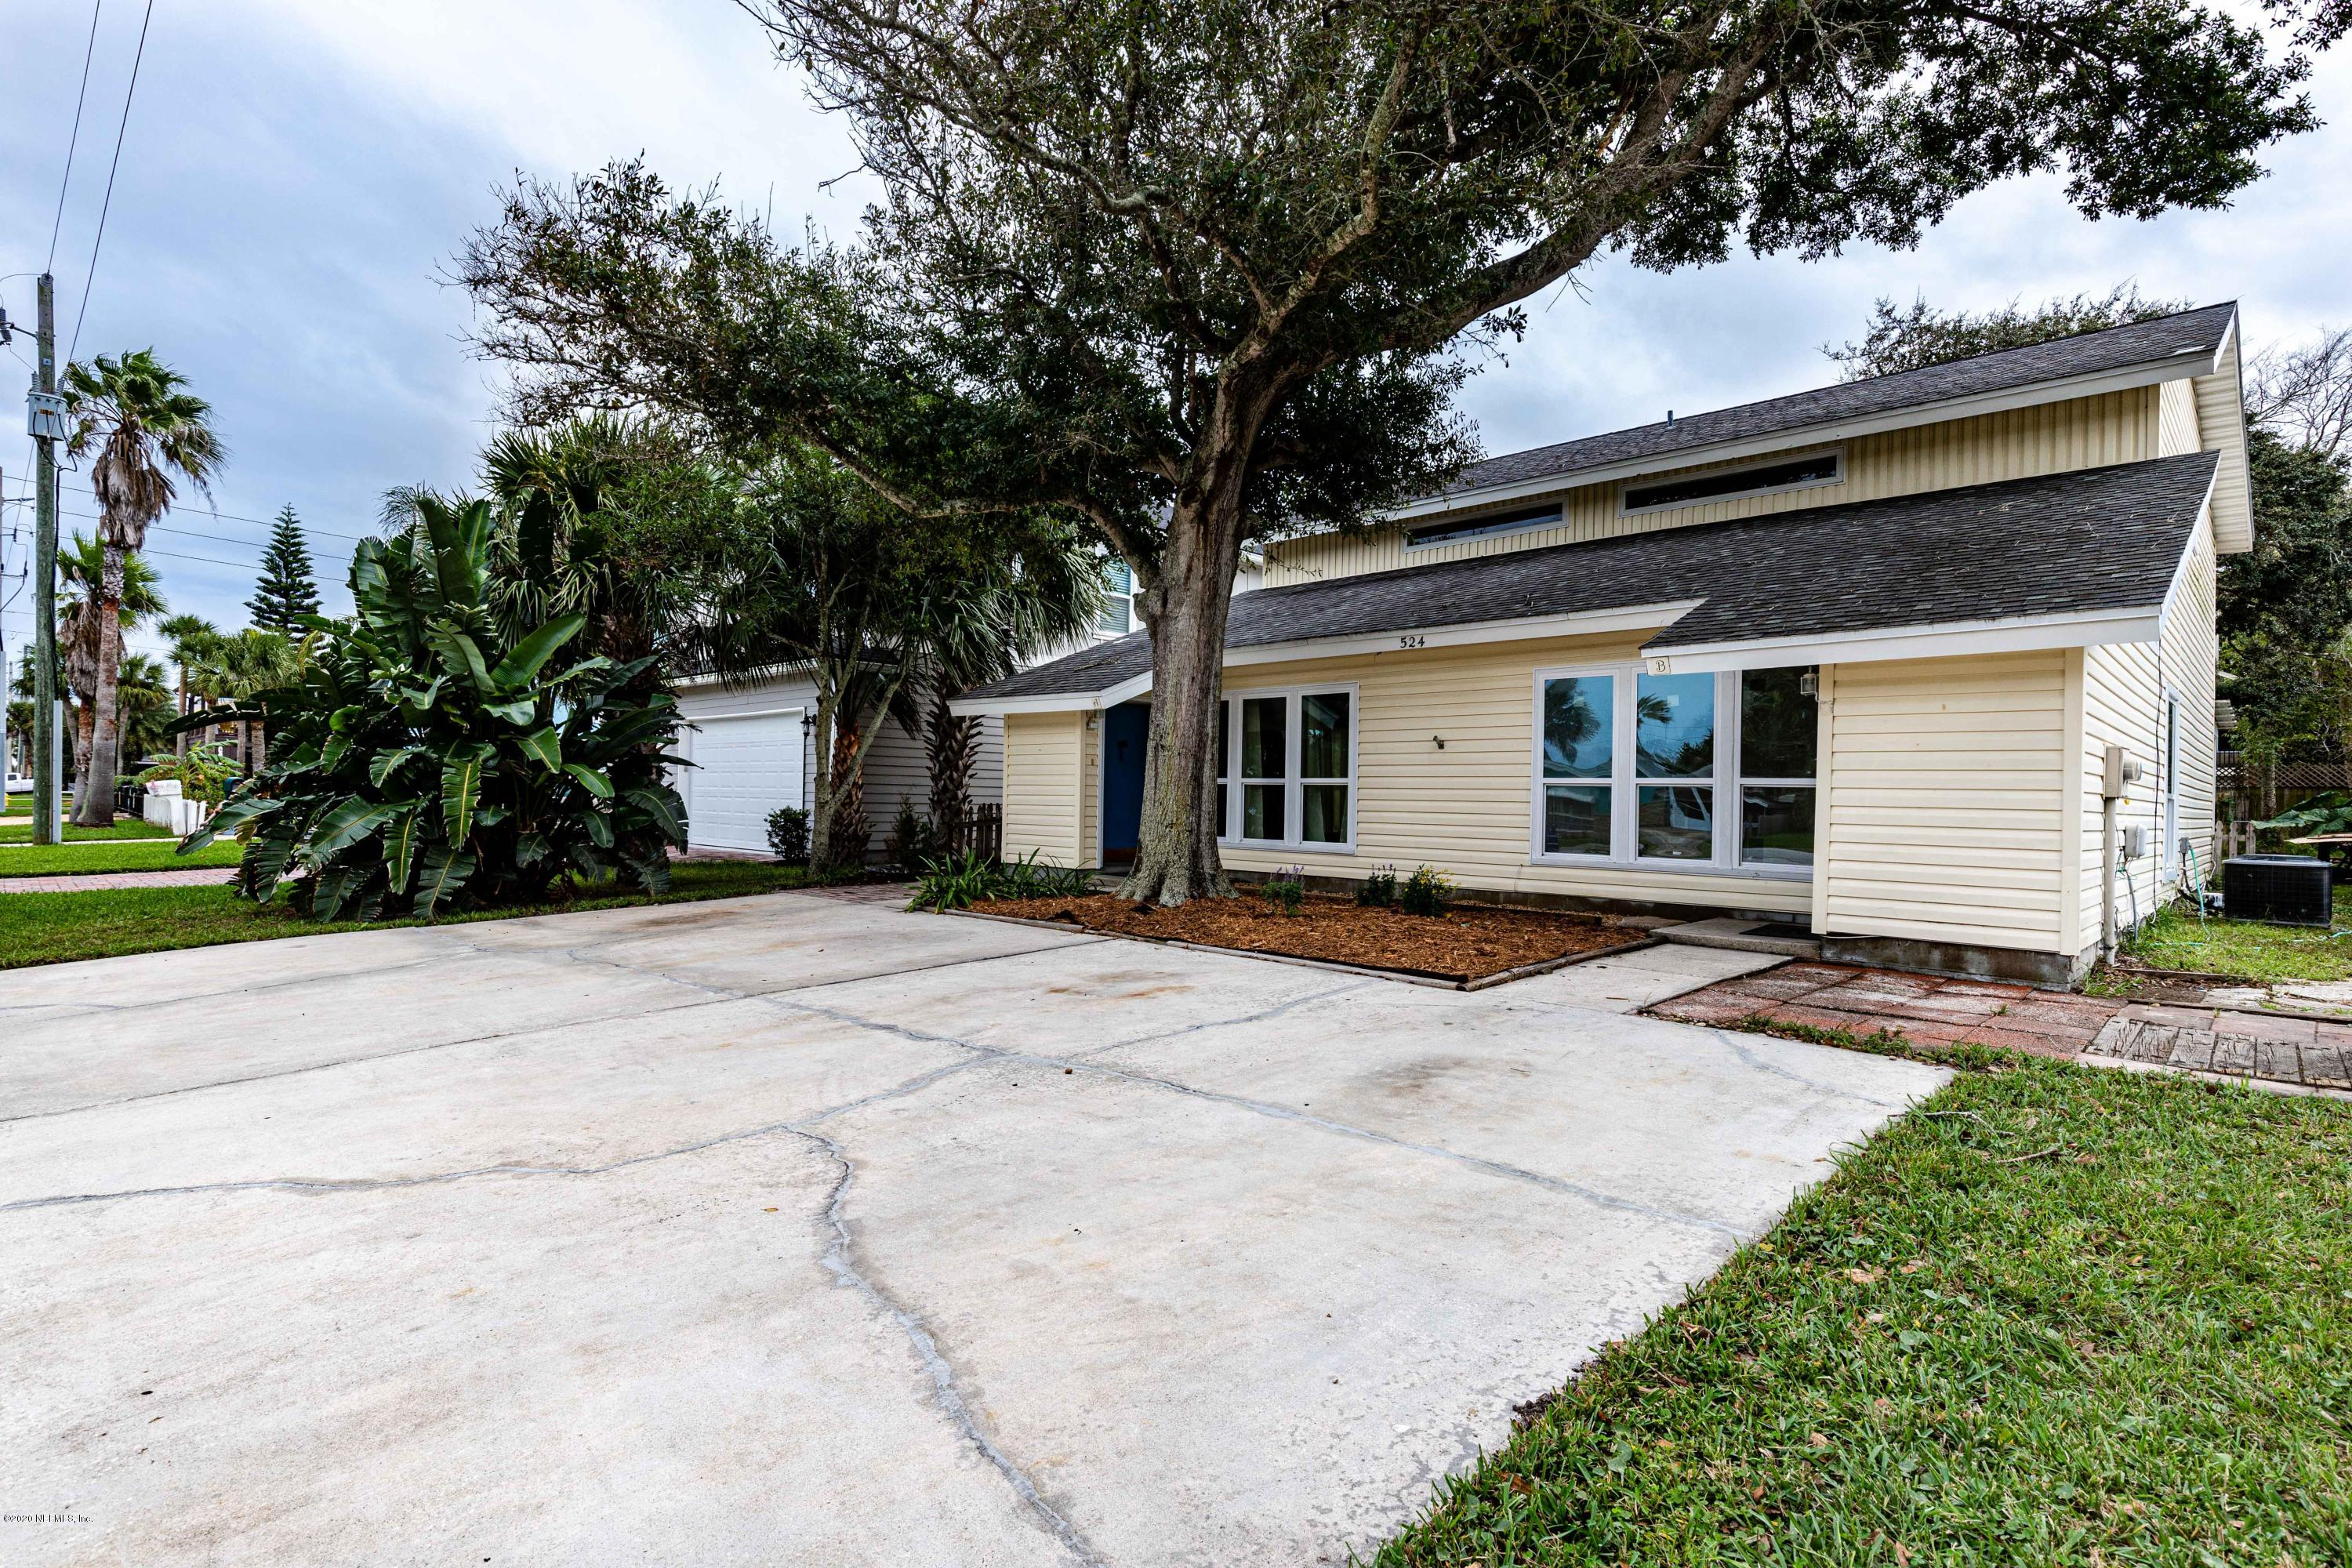 524 6TH, JACKSONVILLE BEACH, FLORIDA 32250, 6 Bedrooms Bedrooms, ,4 BathroomsBathrooms,Residential,For sale,6TH,1078548